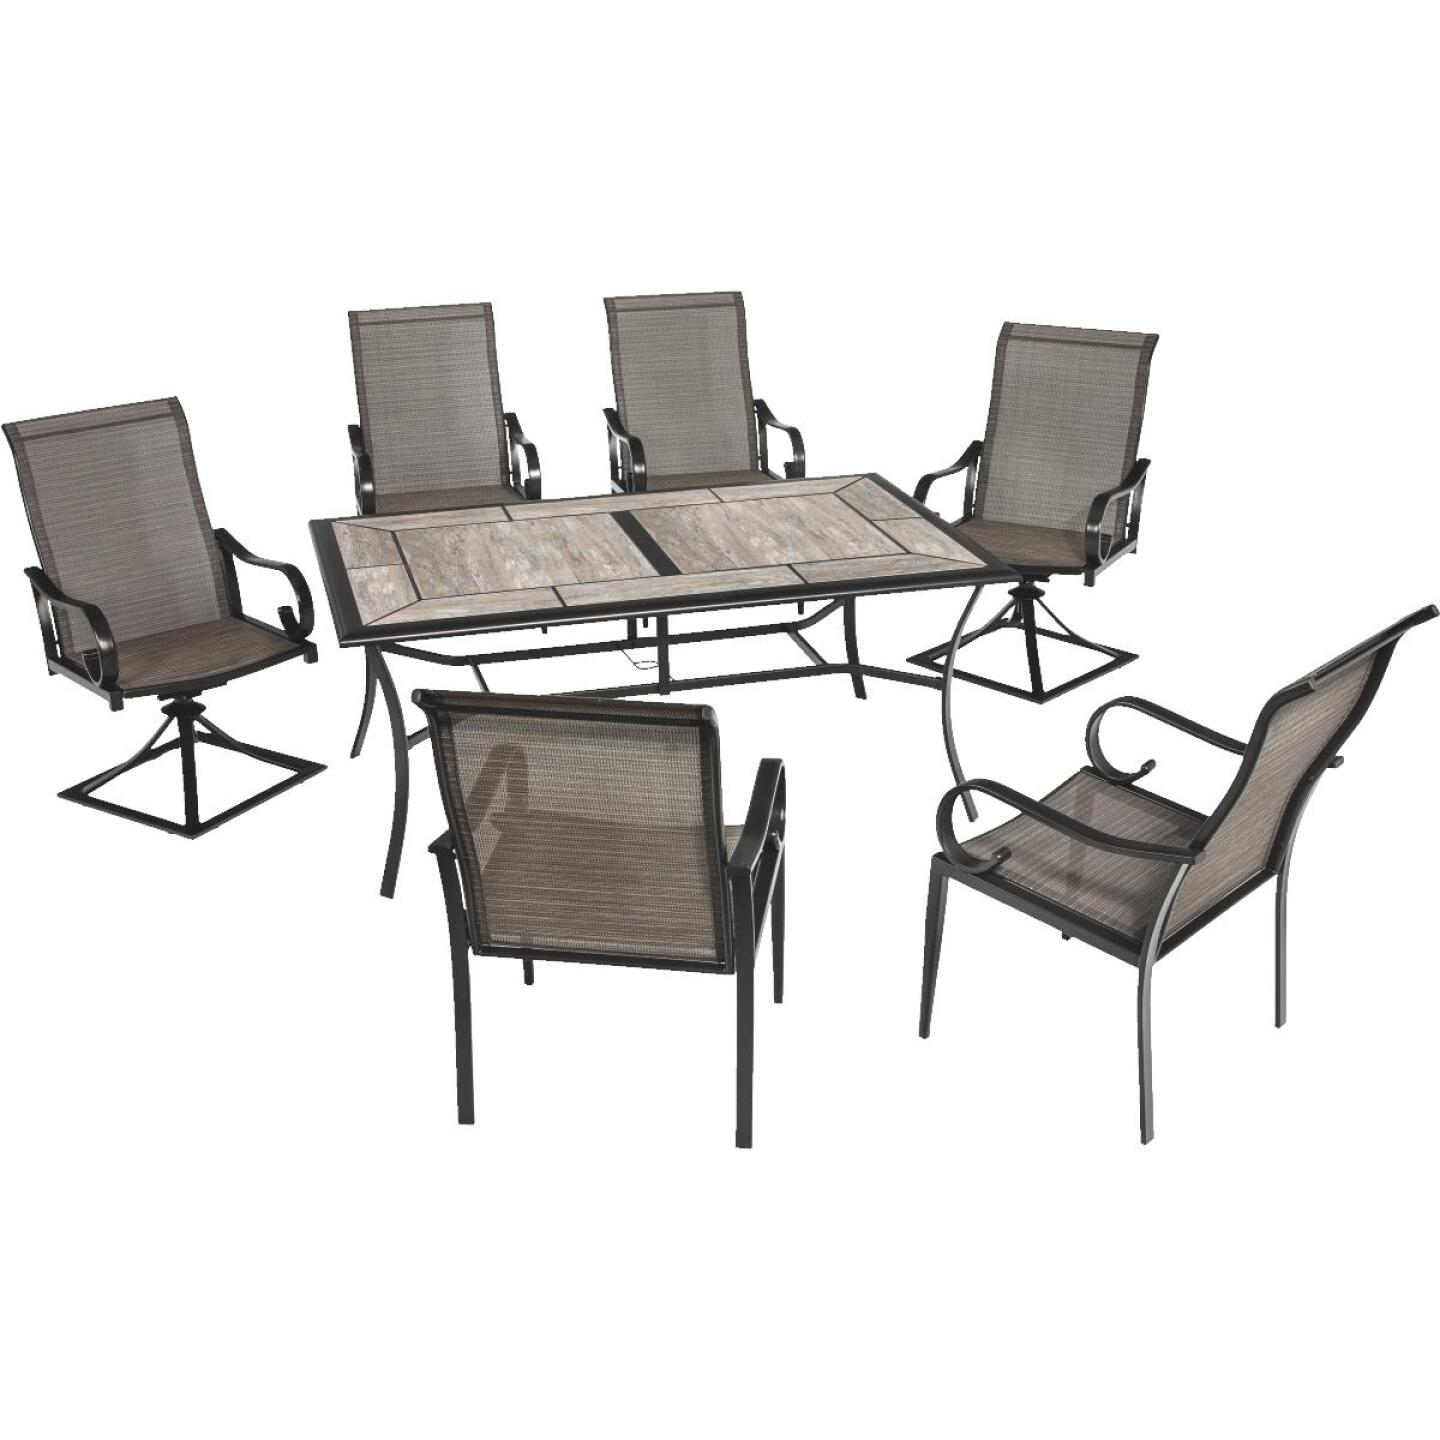 Outdoor Expressions Berkshire 7-Piece Dining Set Image 54